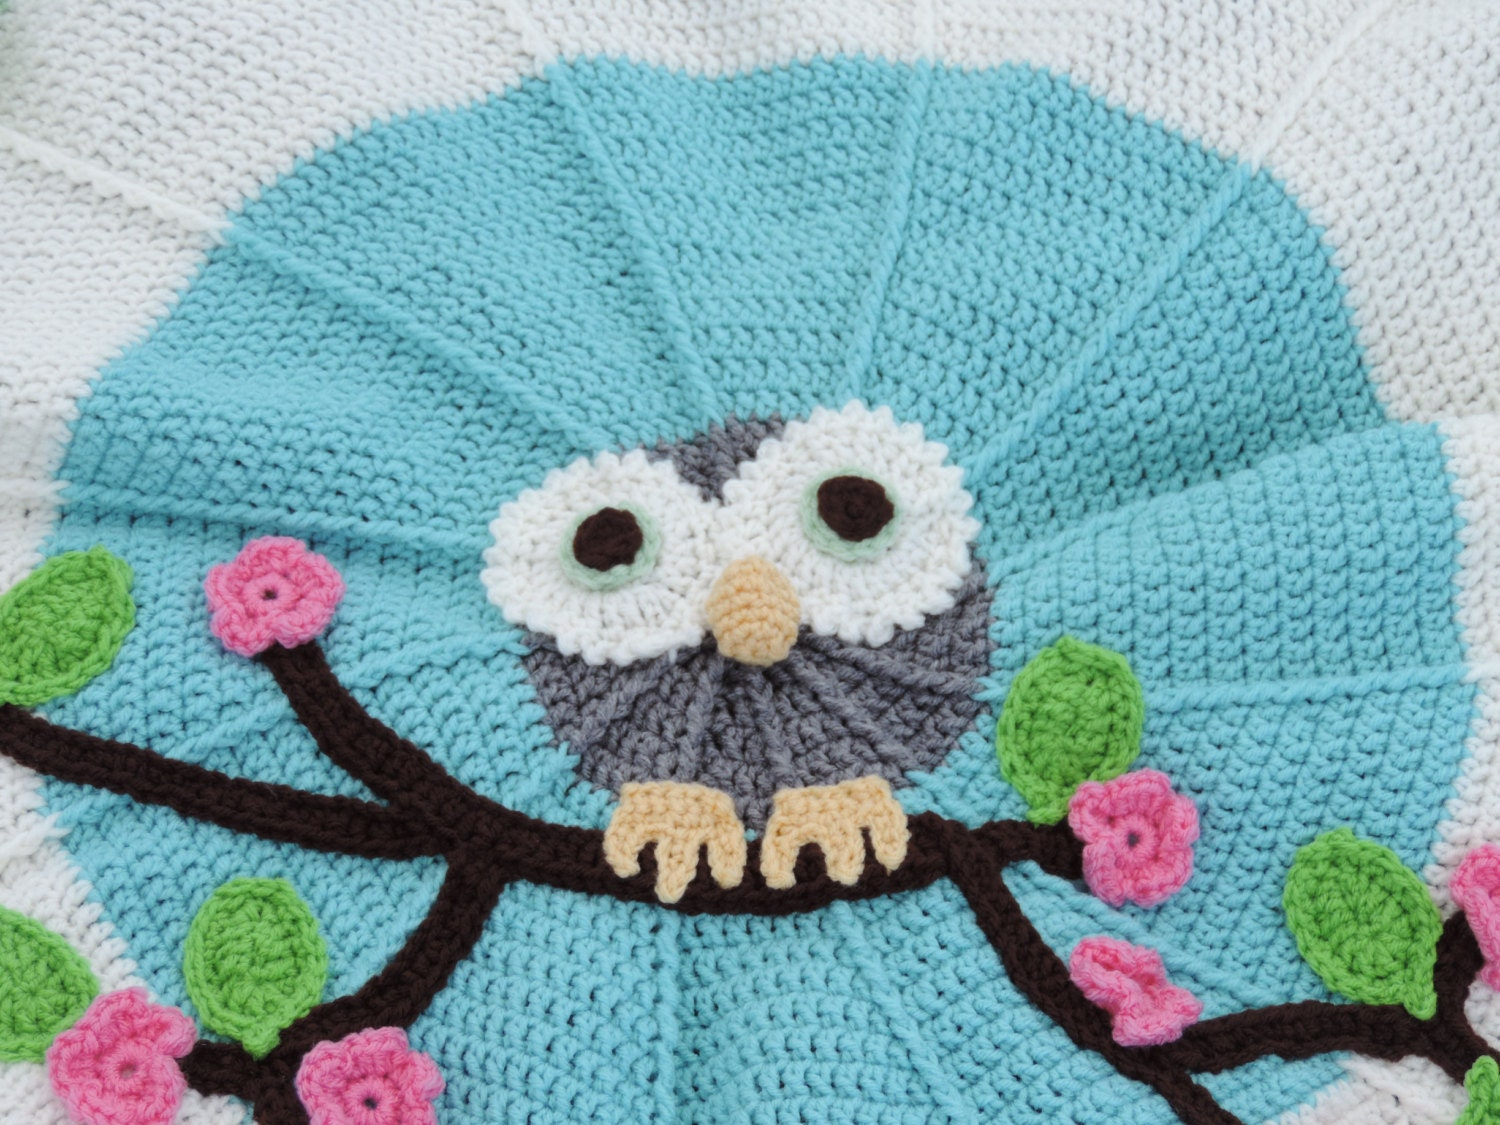 Crochet Owl Baby Blanket : Crochet Baby Owl Blanket by EllieJaneShop on Etsy